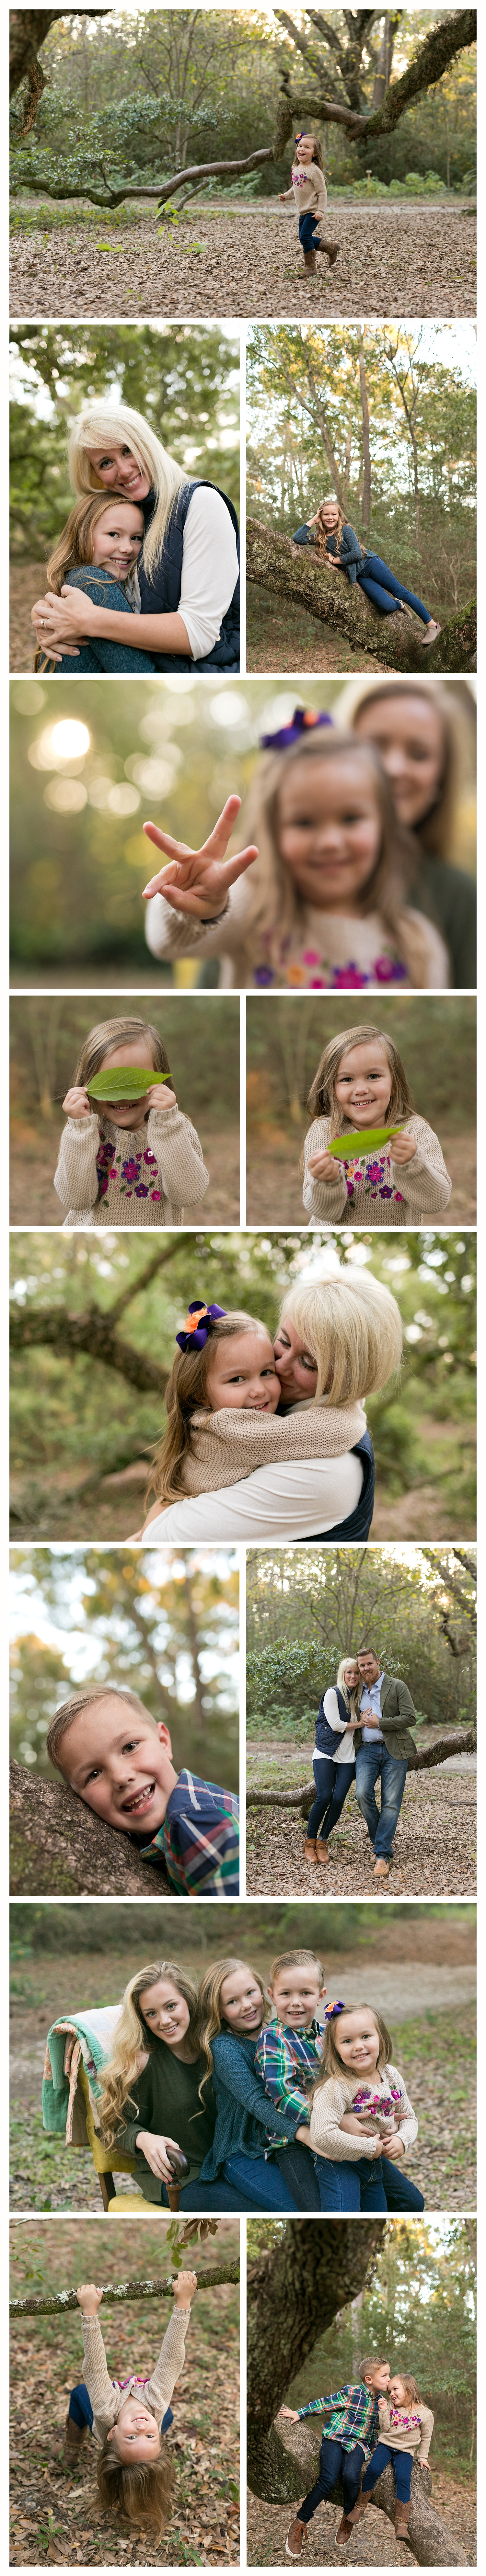 fun candid family photos in nature - Ocean Springs, Mississippi